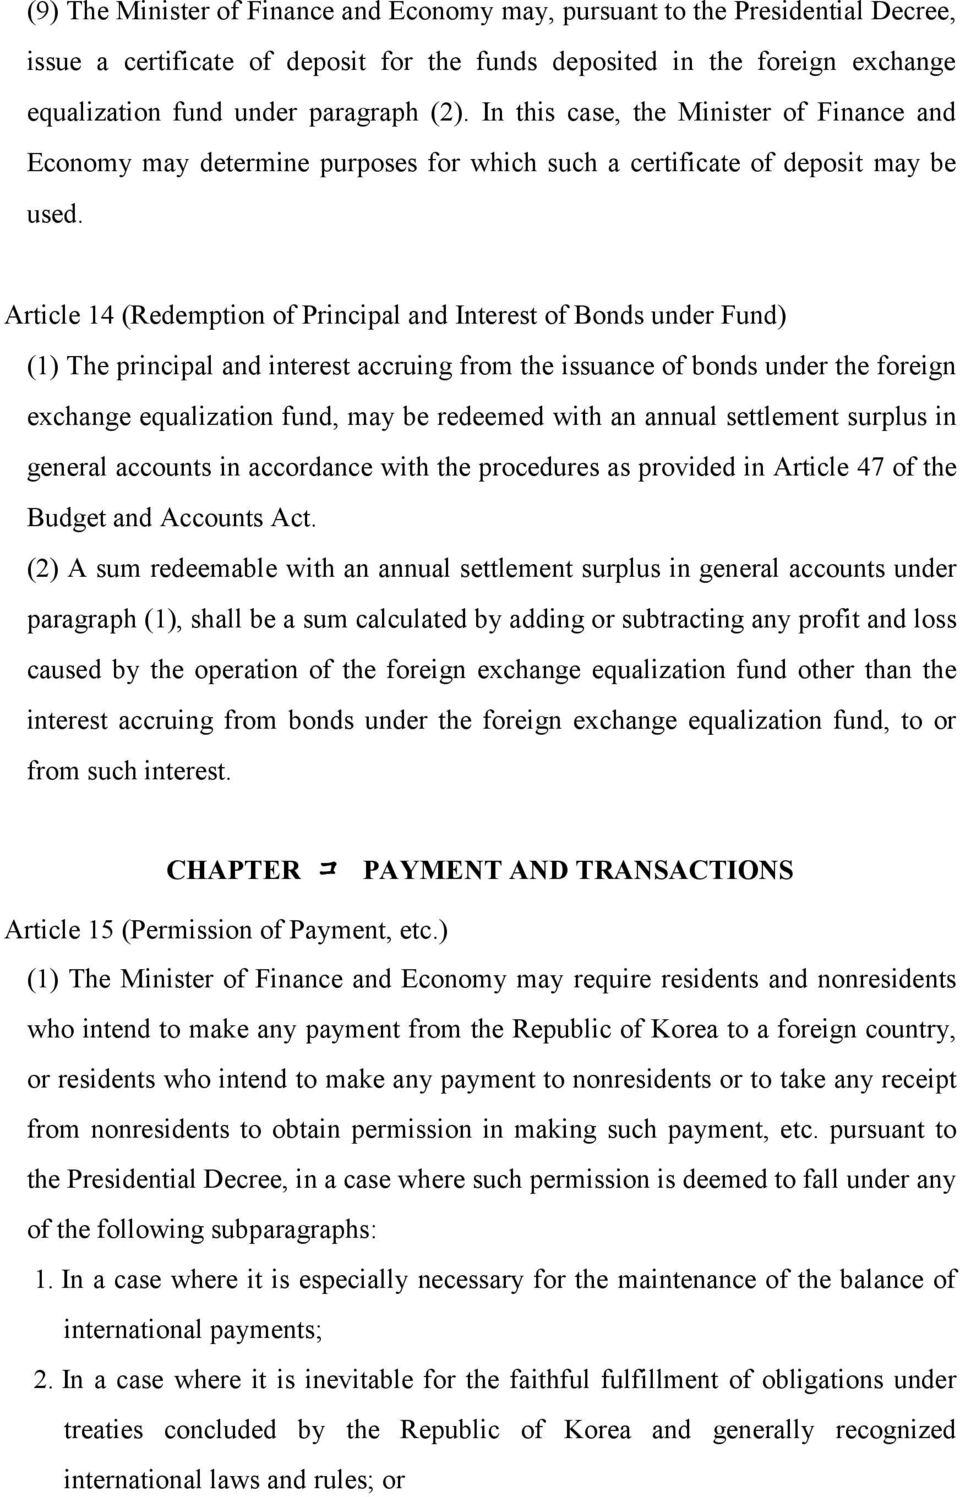 Article 14 (Redemption of Principal and Interest of Bonds under Fund) (1) The principal and interest accruing from the issuance of bonds under the foreign exchange equalization fund, may be redeemed